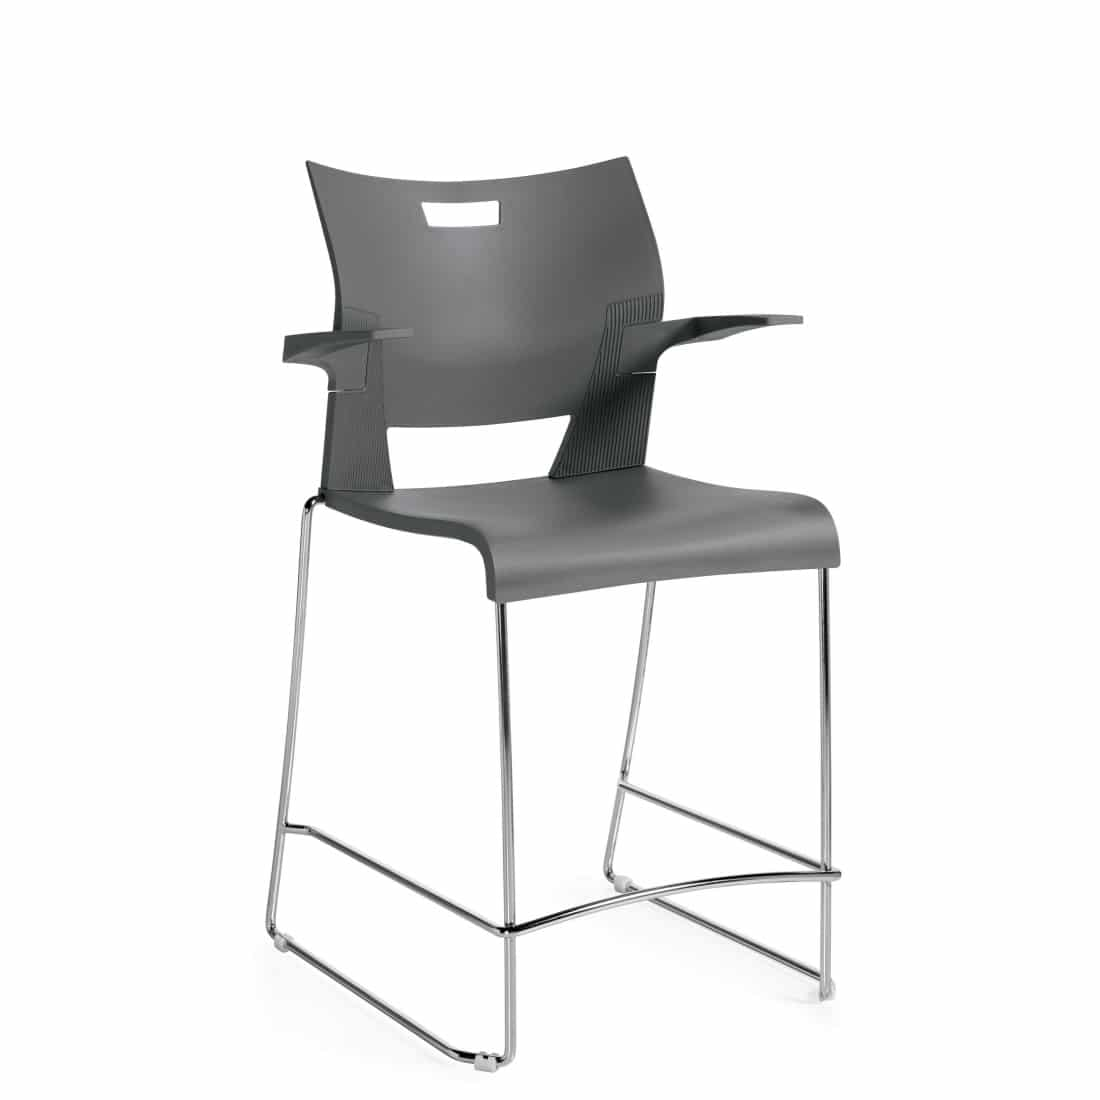 Duet High Density Stacking Chair